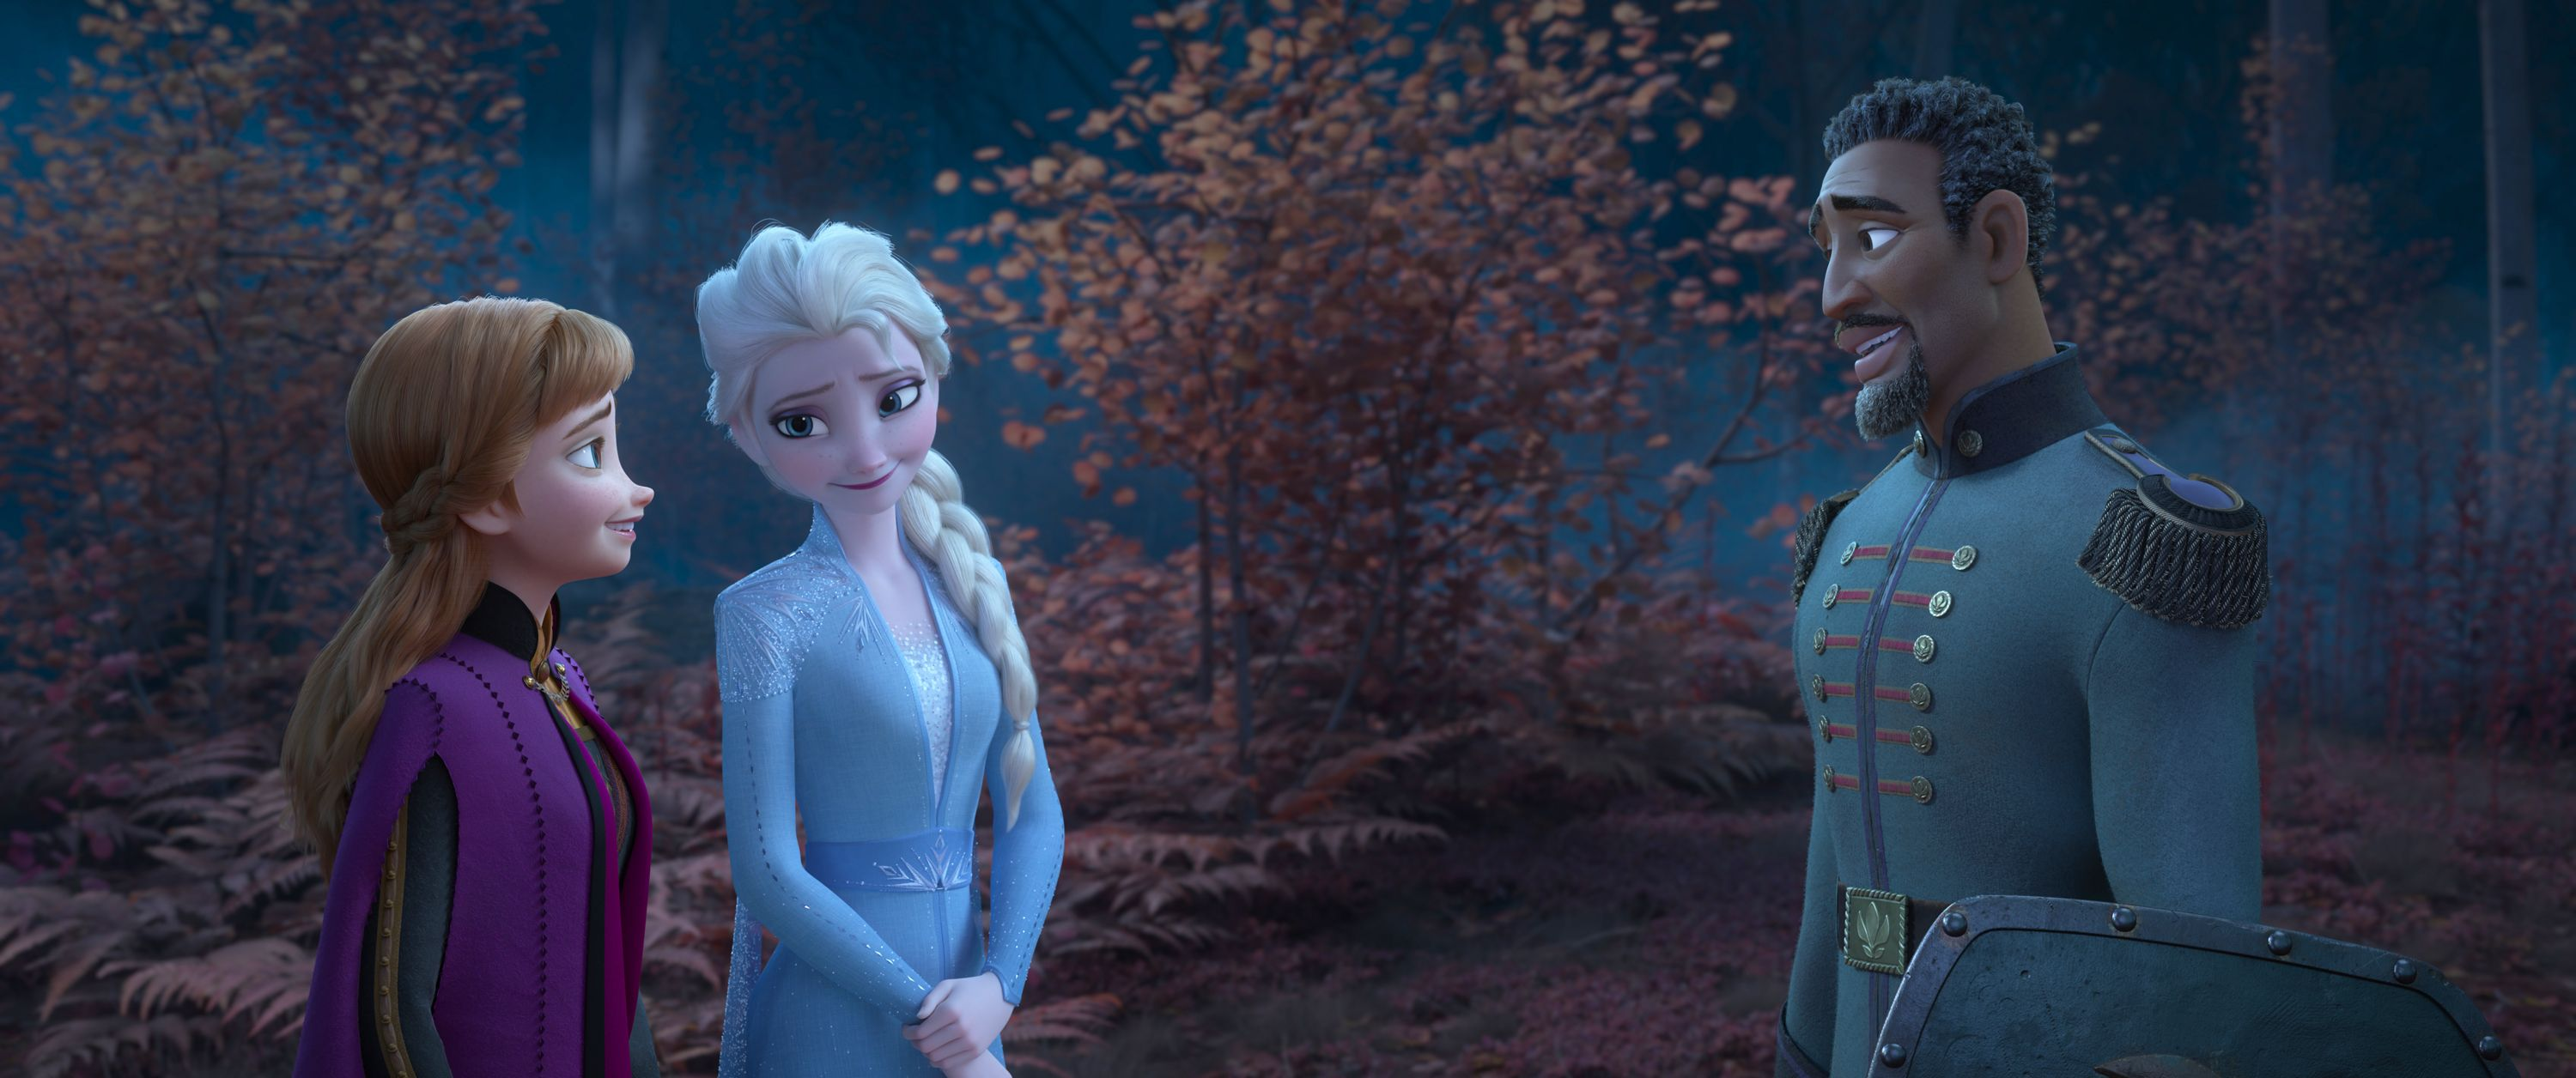 """Frozen 2 stars reveal what surprised them about the """"gutsy"""" Disney sequel"""